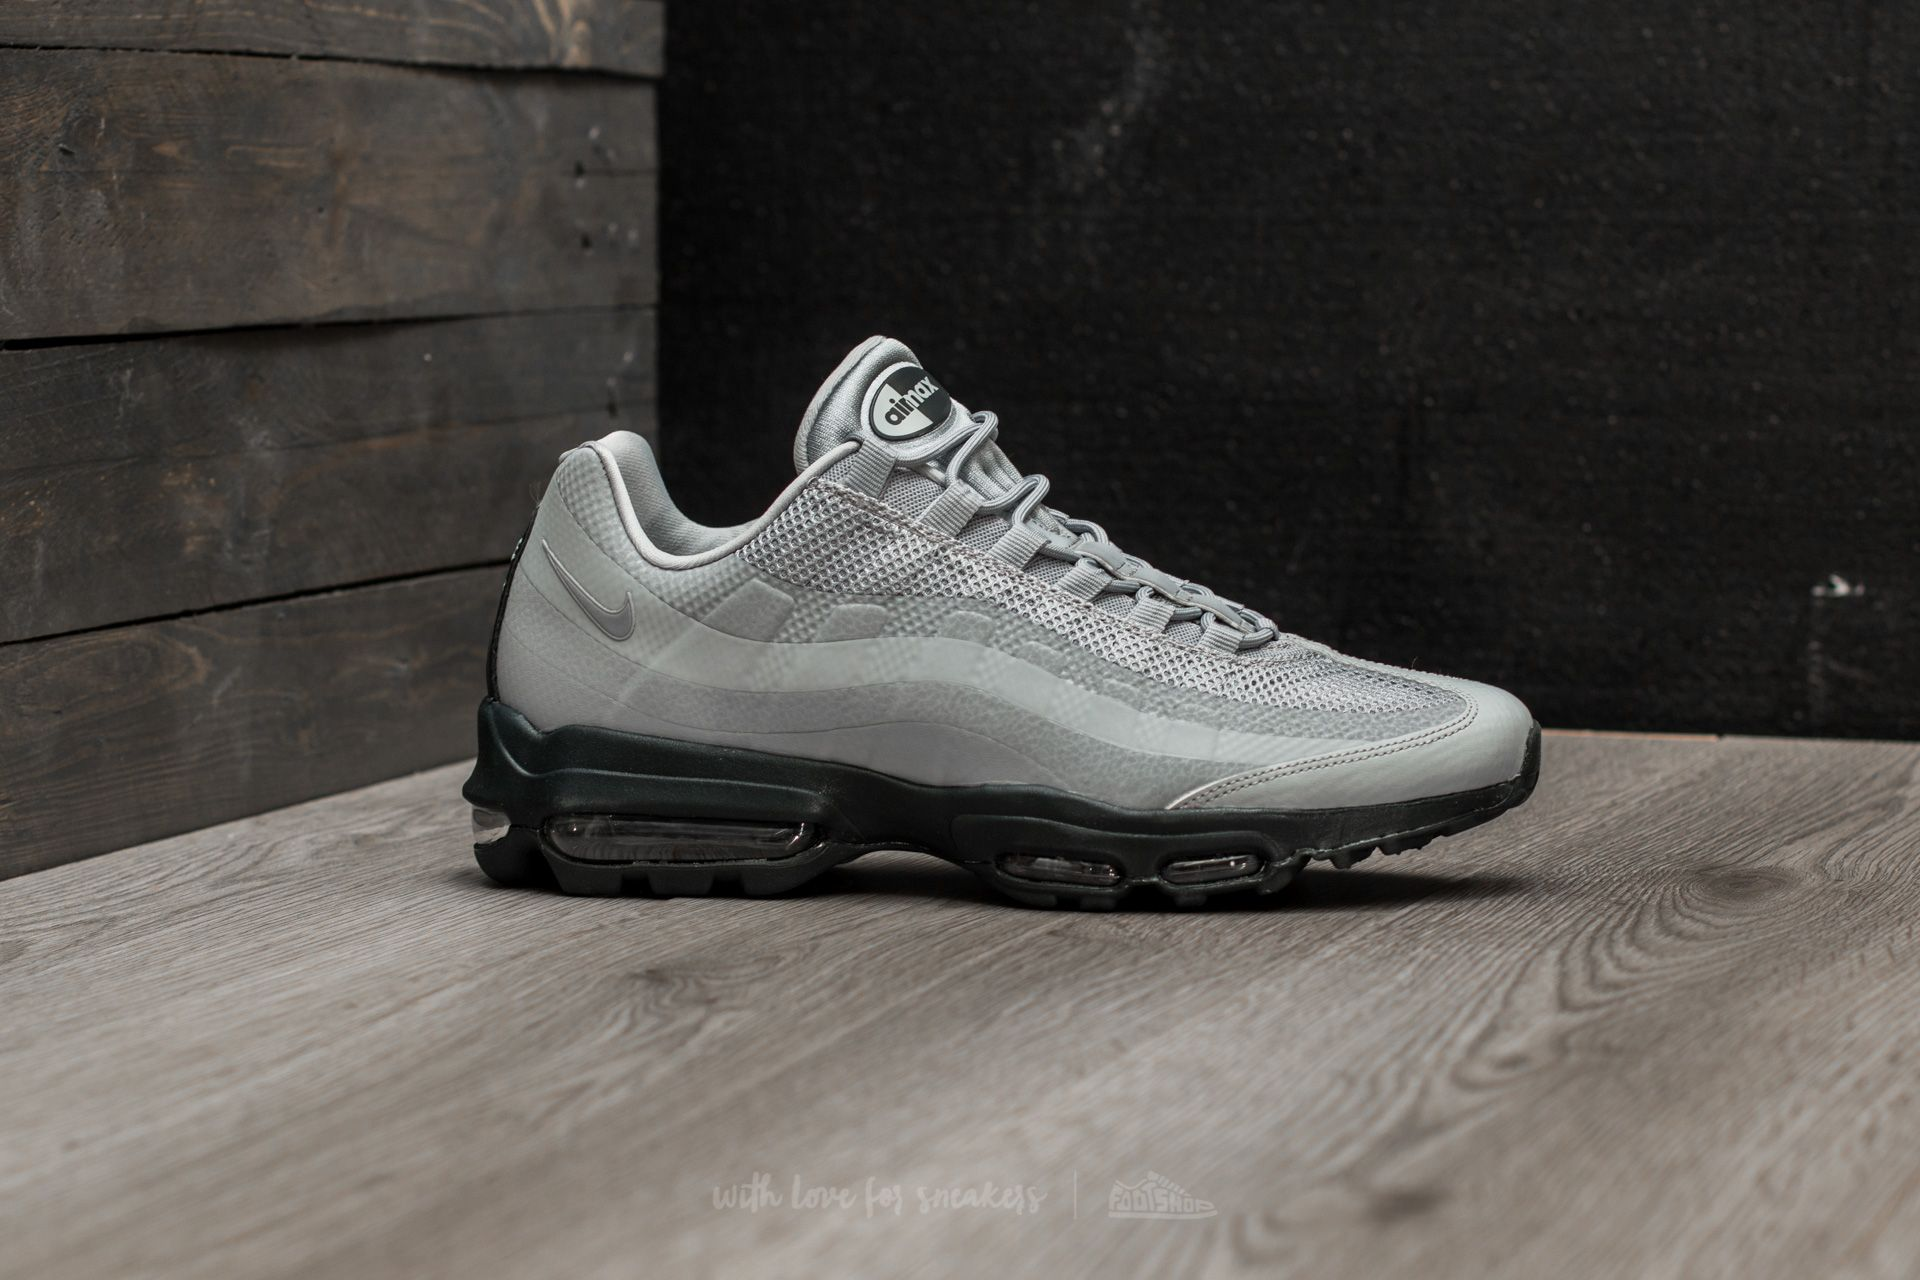 detailed look 6e716 95022 Nike Air Max 95 Ultra Essential Wolf Grey/ Wolf Grey ...